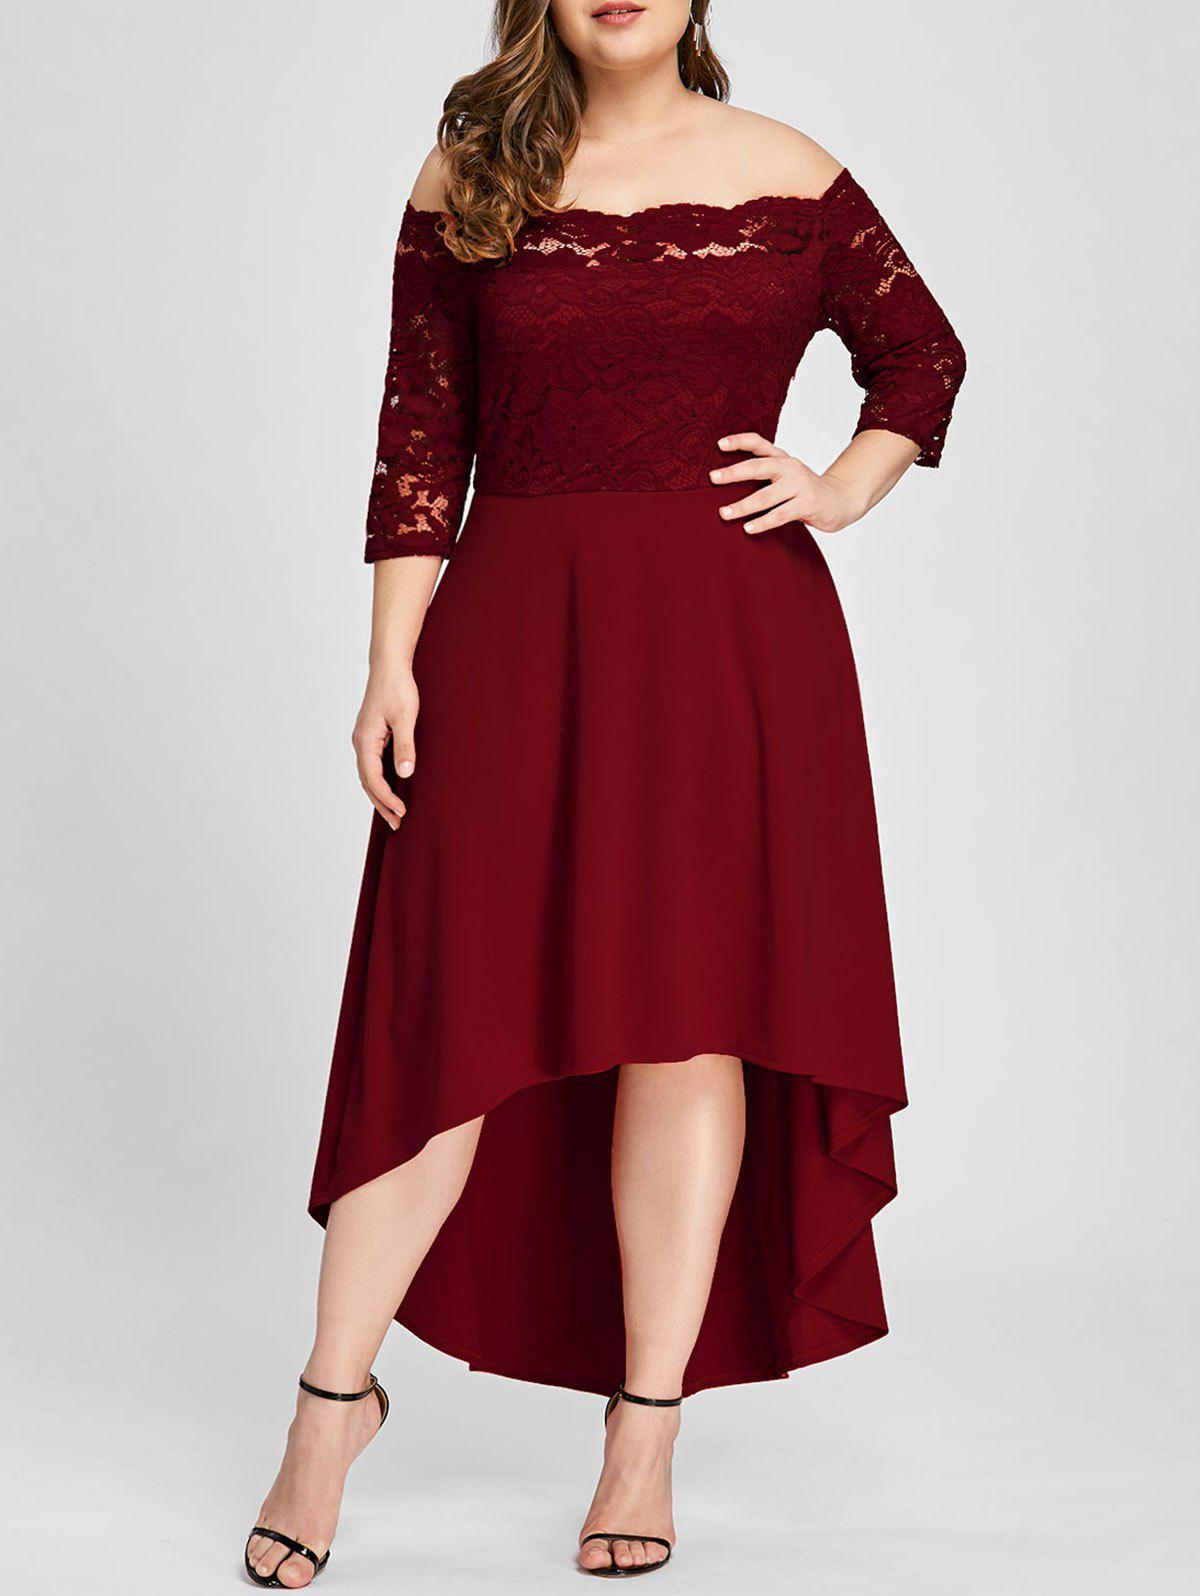 26% OFF] Plus Size Off Shoulder Lace High Low Dress | Rosegal